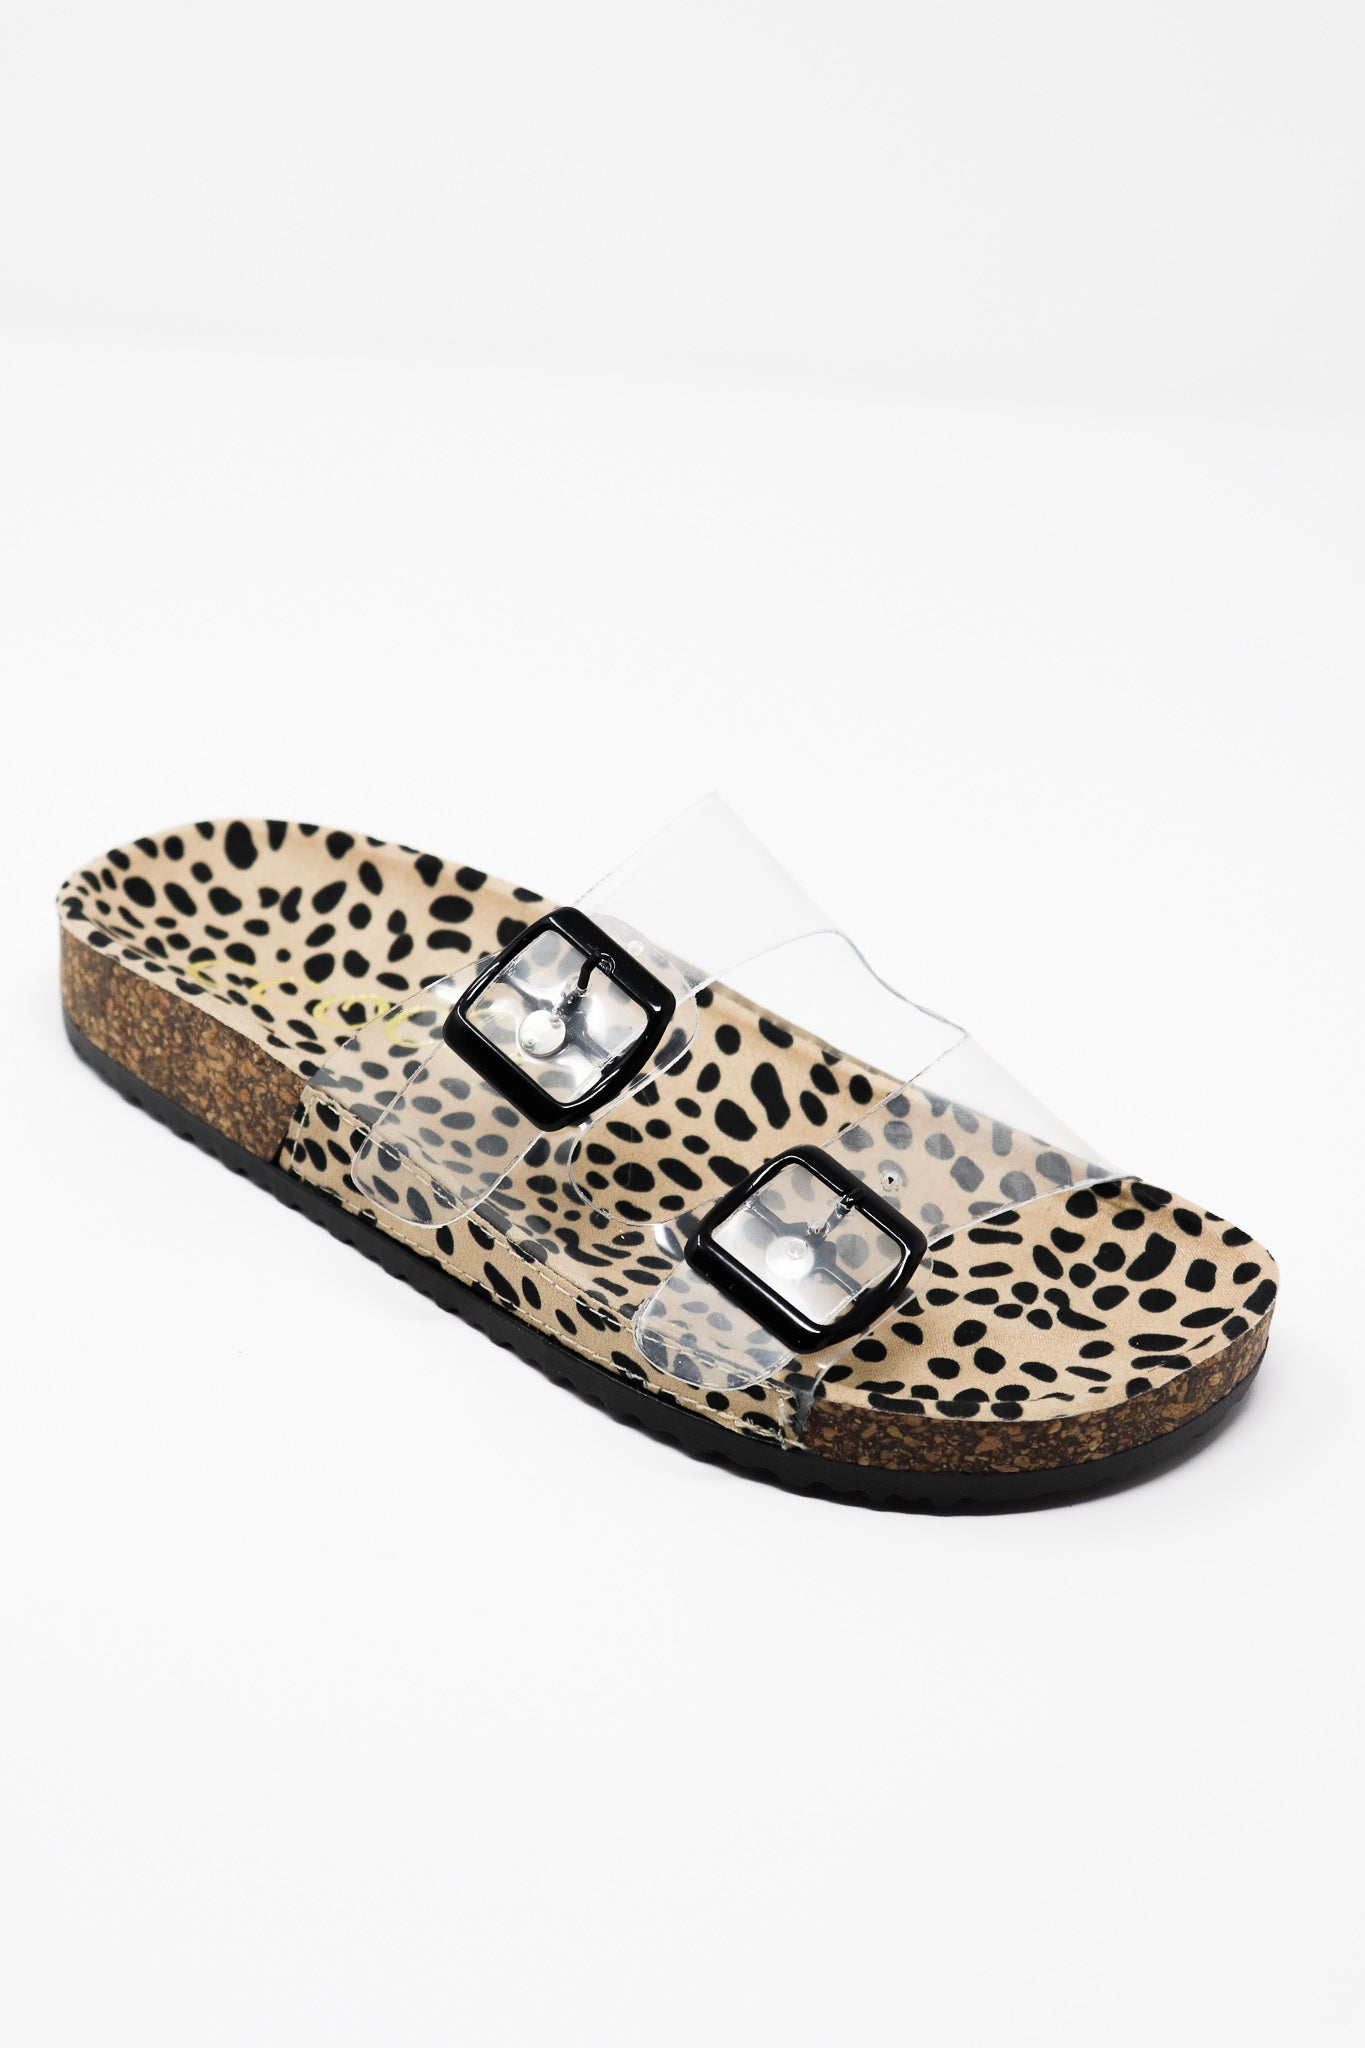 Cheetah Clear Strap Slip-On Sandals - Gabrielle's Biloxi